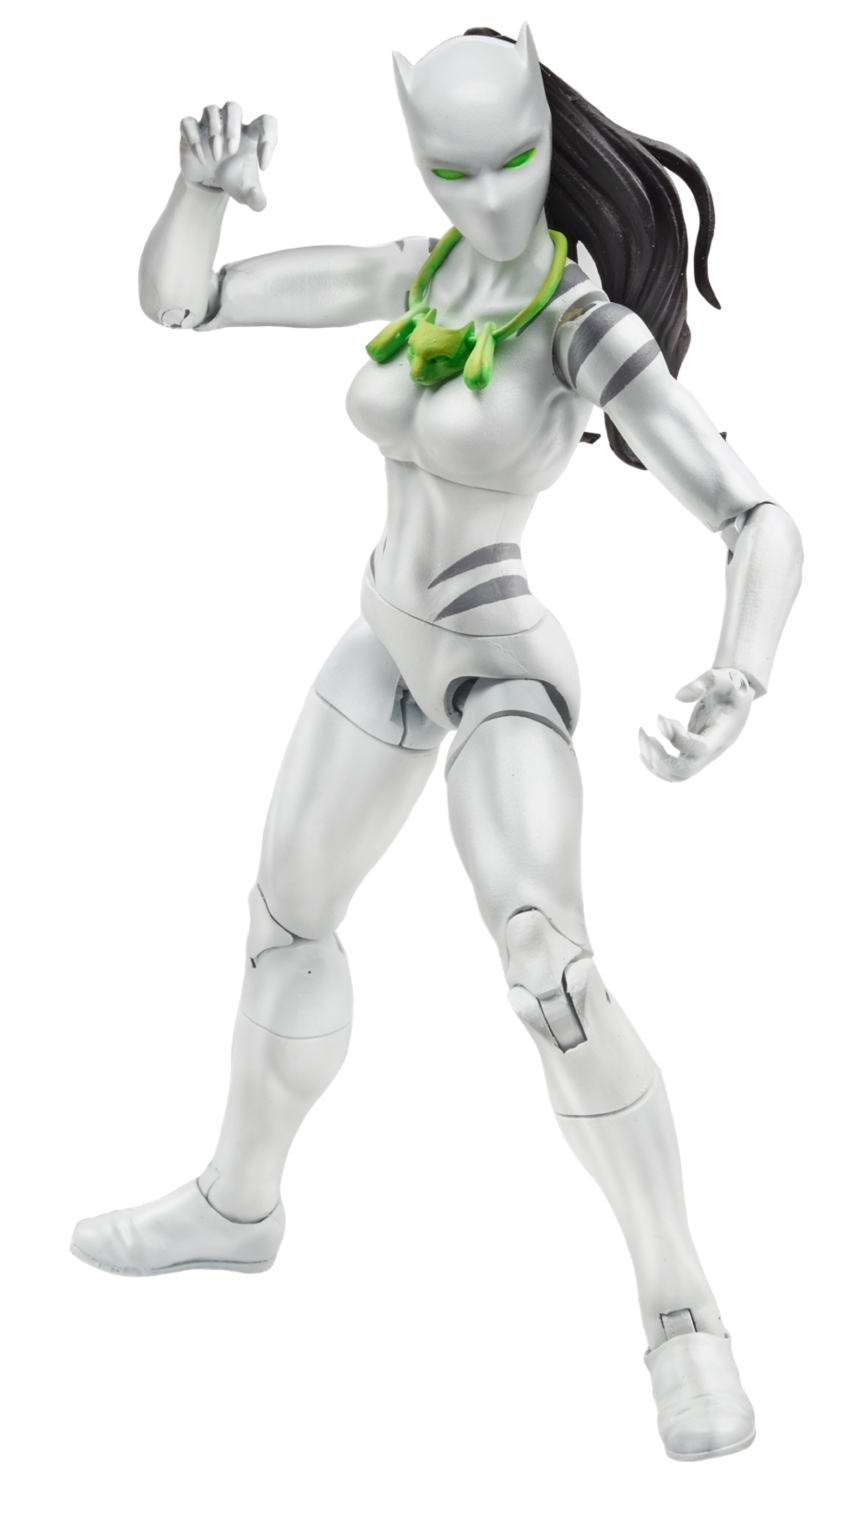 SpidermanLegends-Wave2-White Tiger